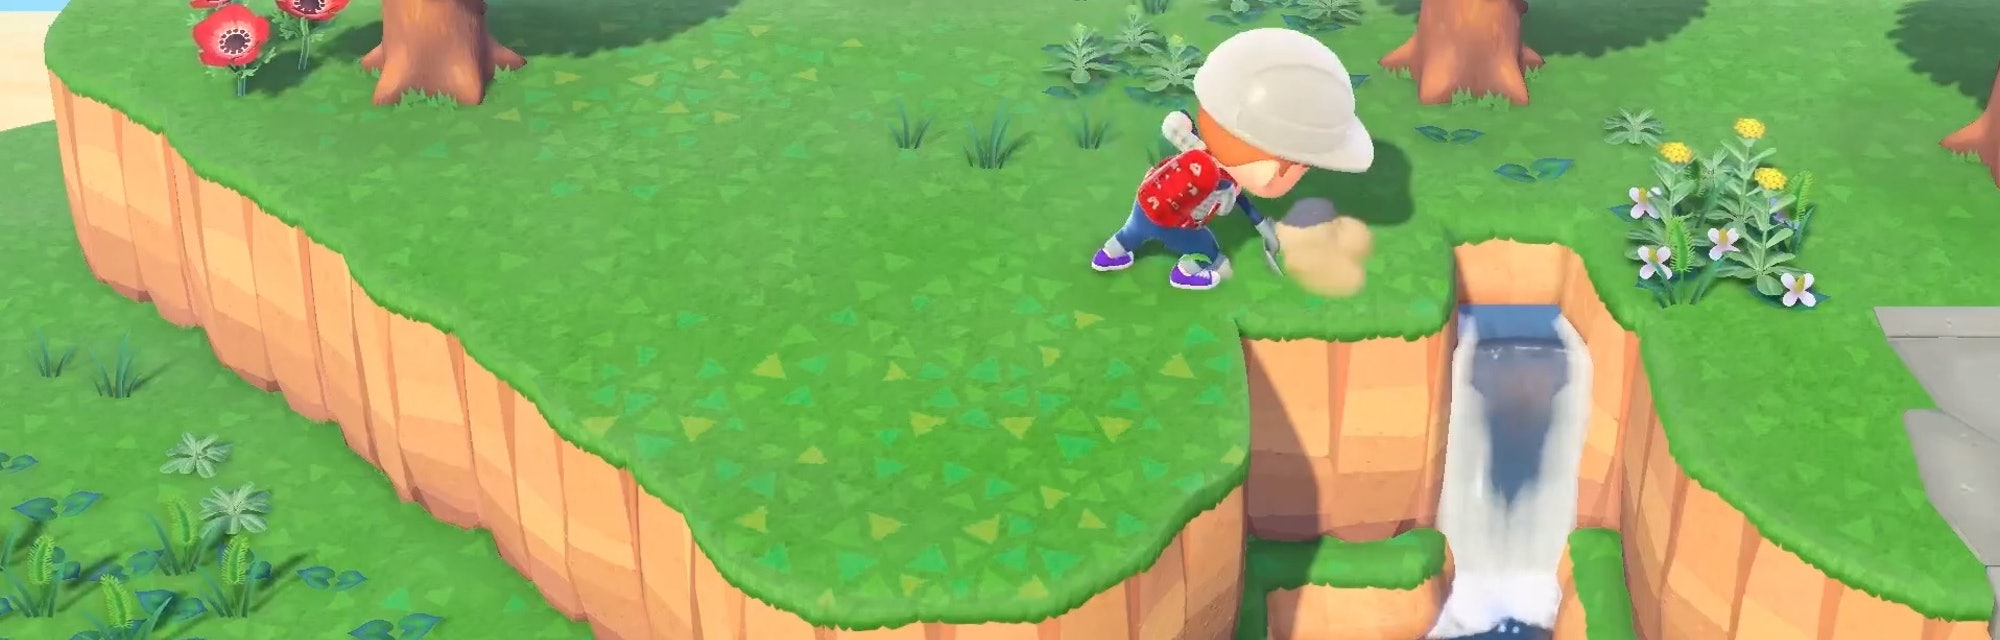 Animal Crossing How To Get A 3 Star Island And Unlock Terraforming